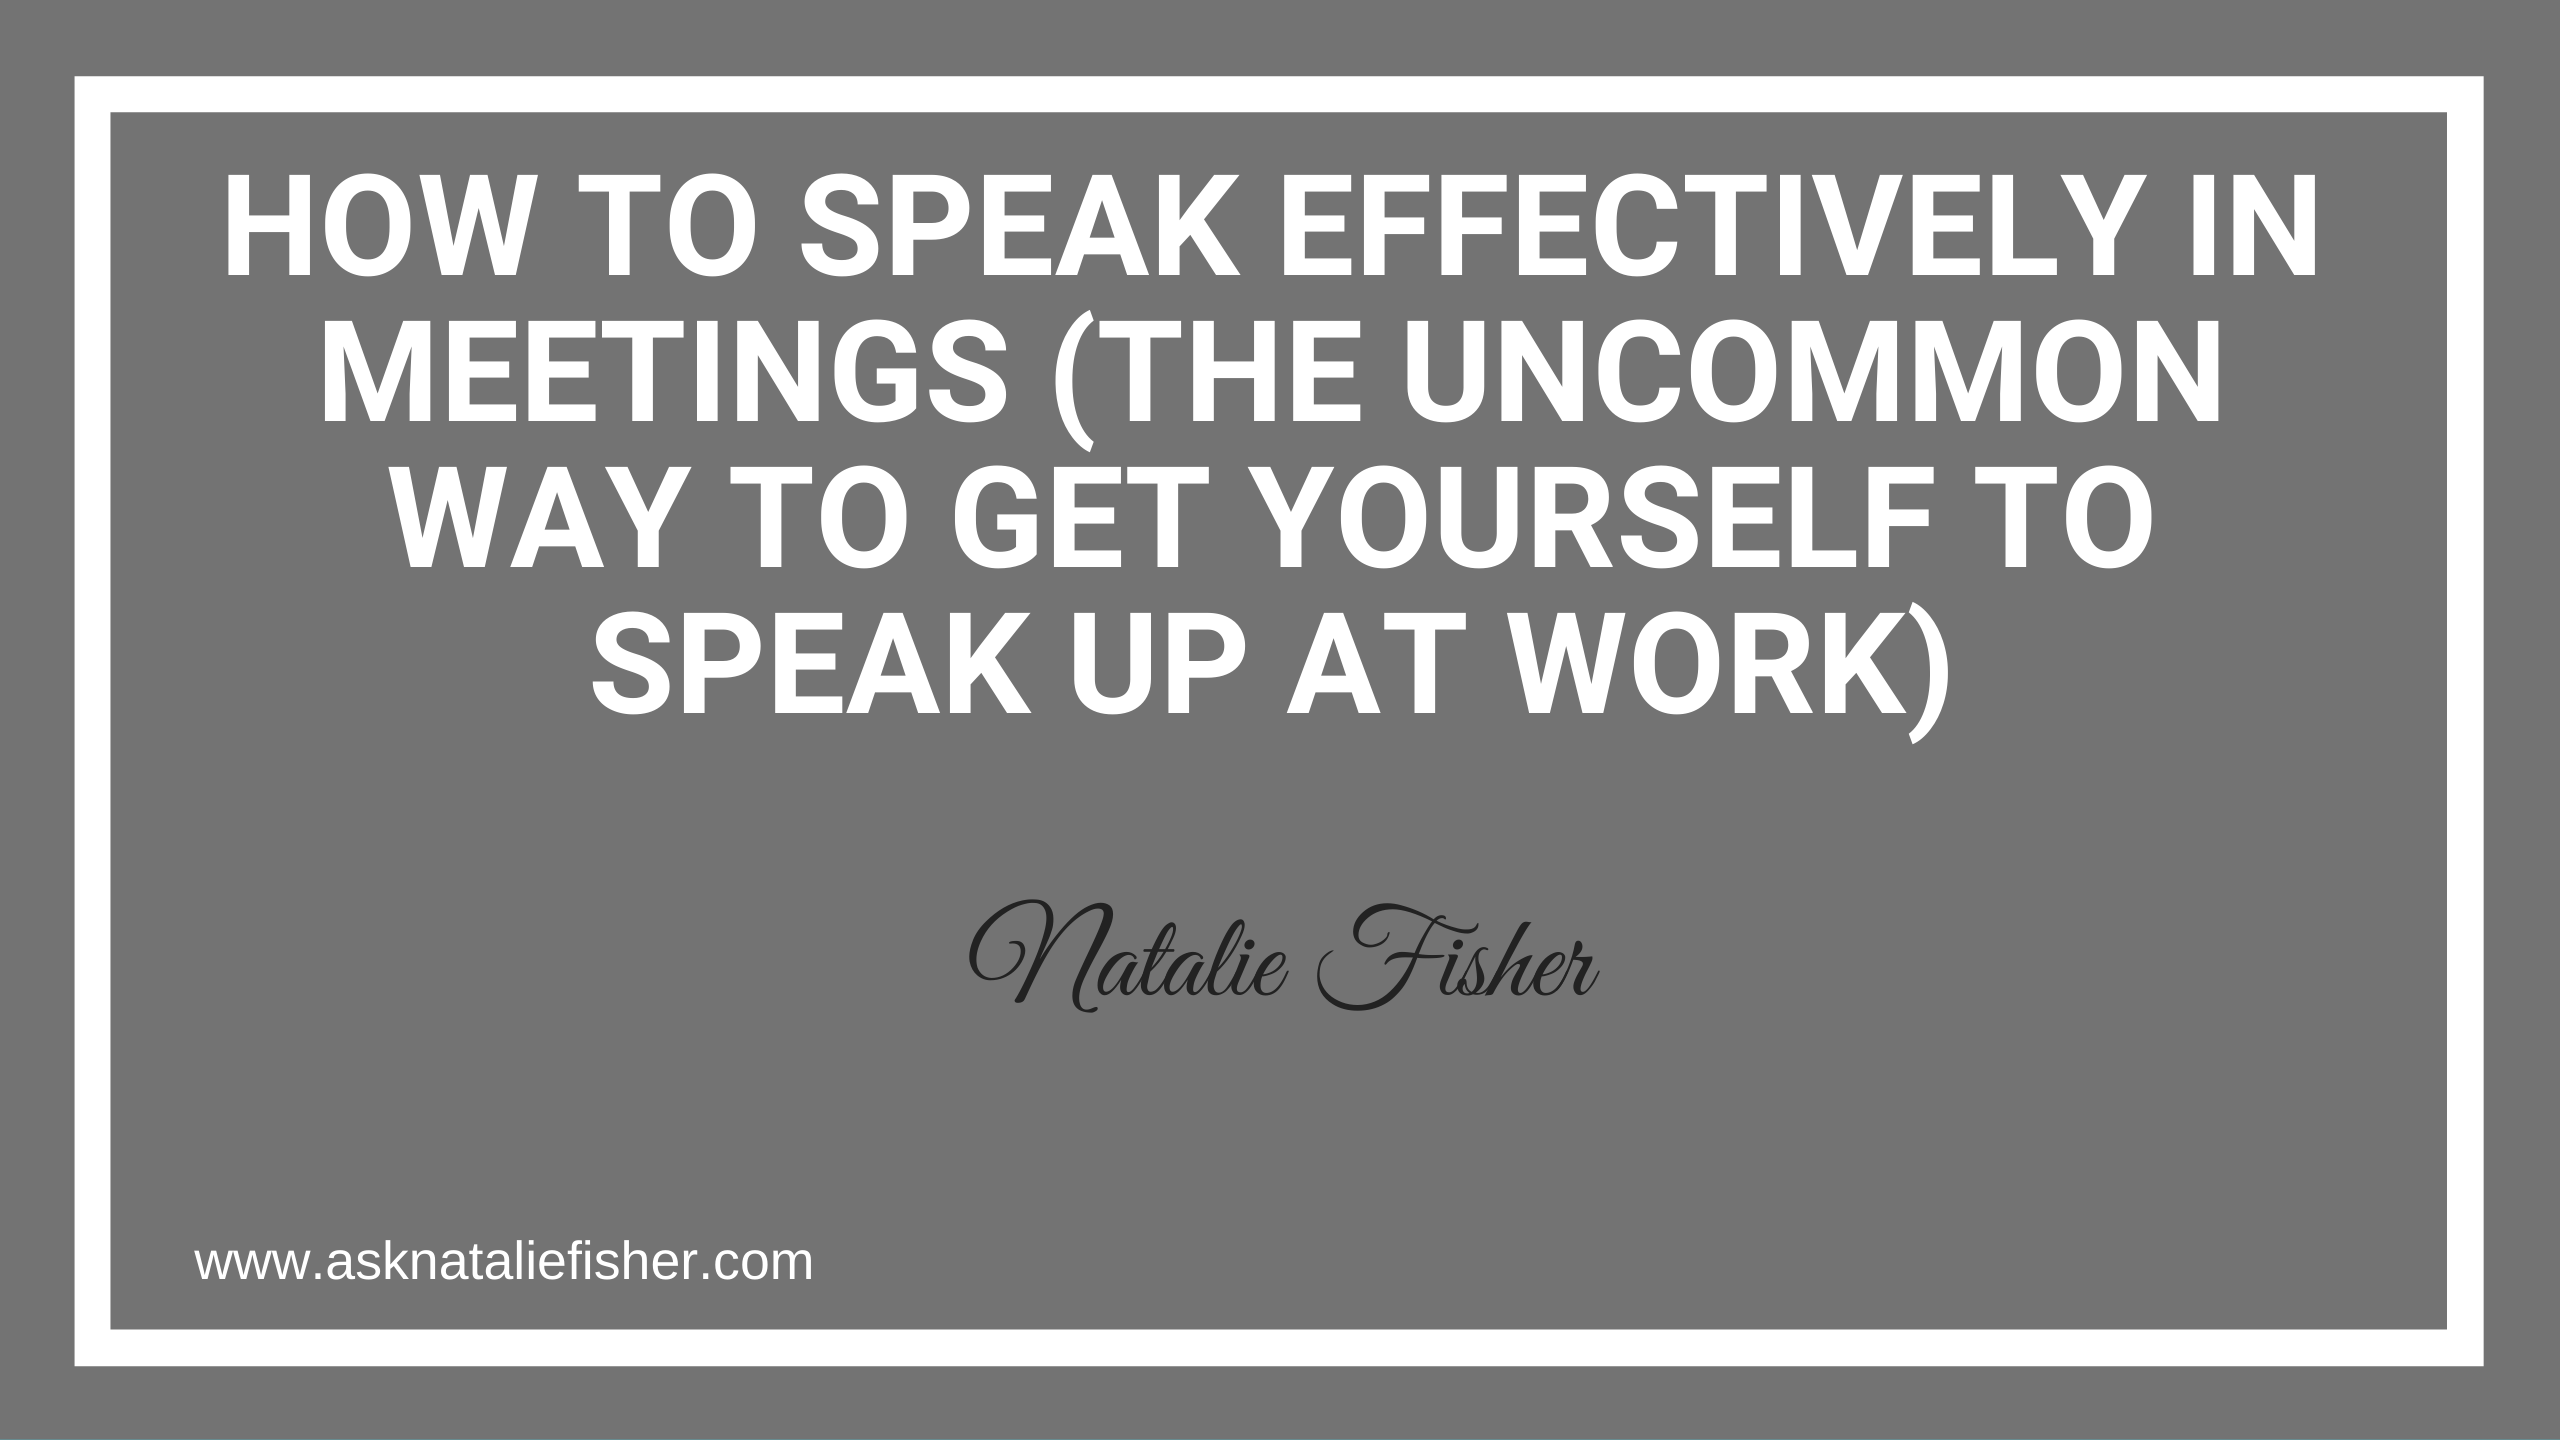 How To Speak Effectively In Meetings (The Uncommon Way To Get Yourself To Speak Up At Work)